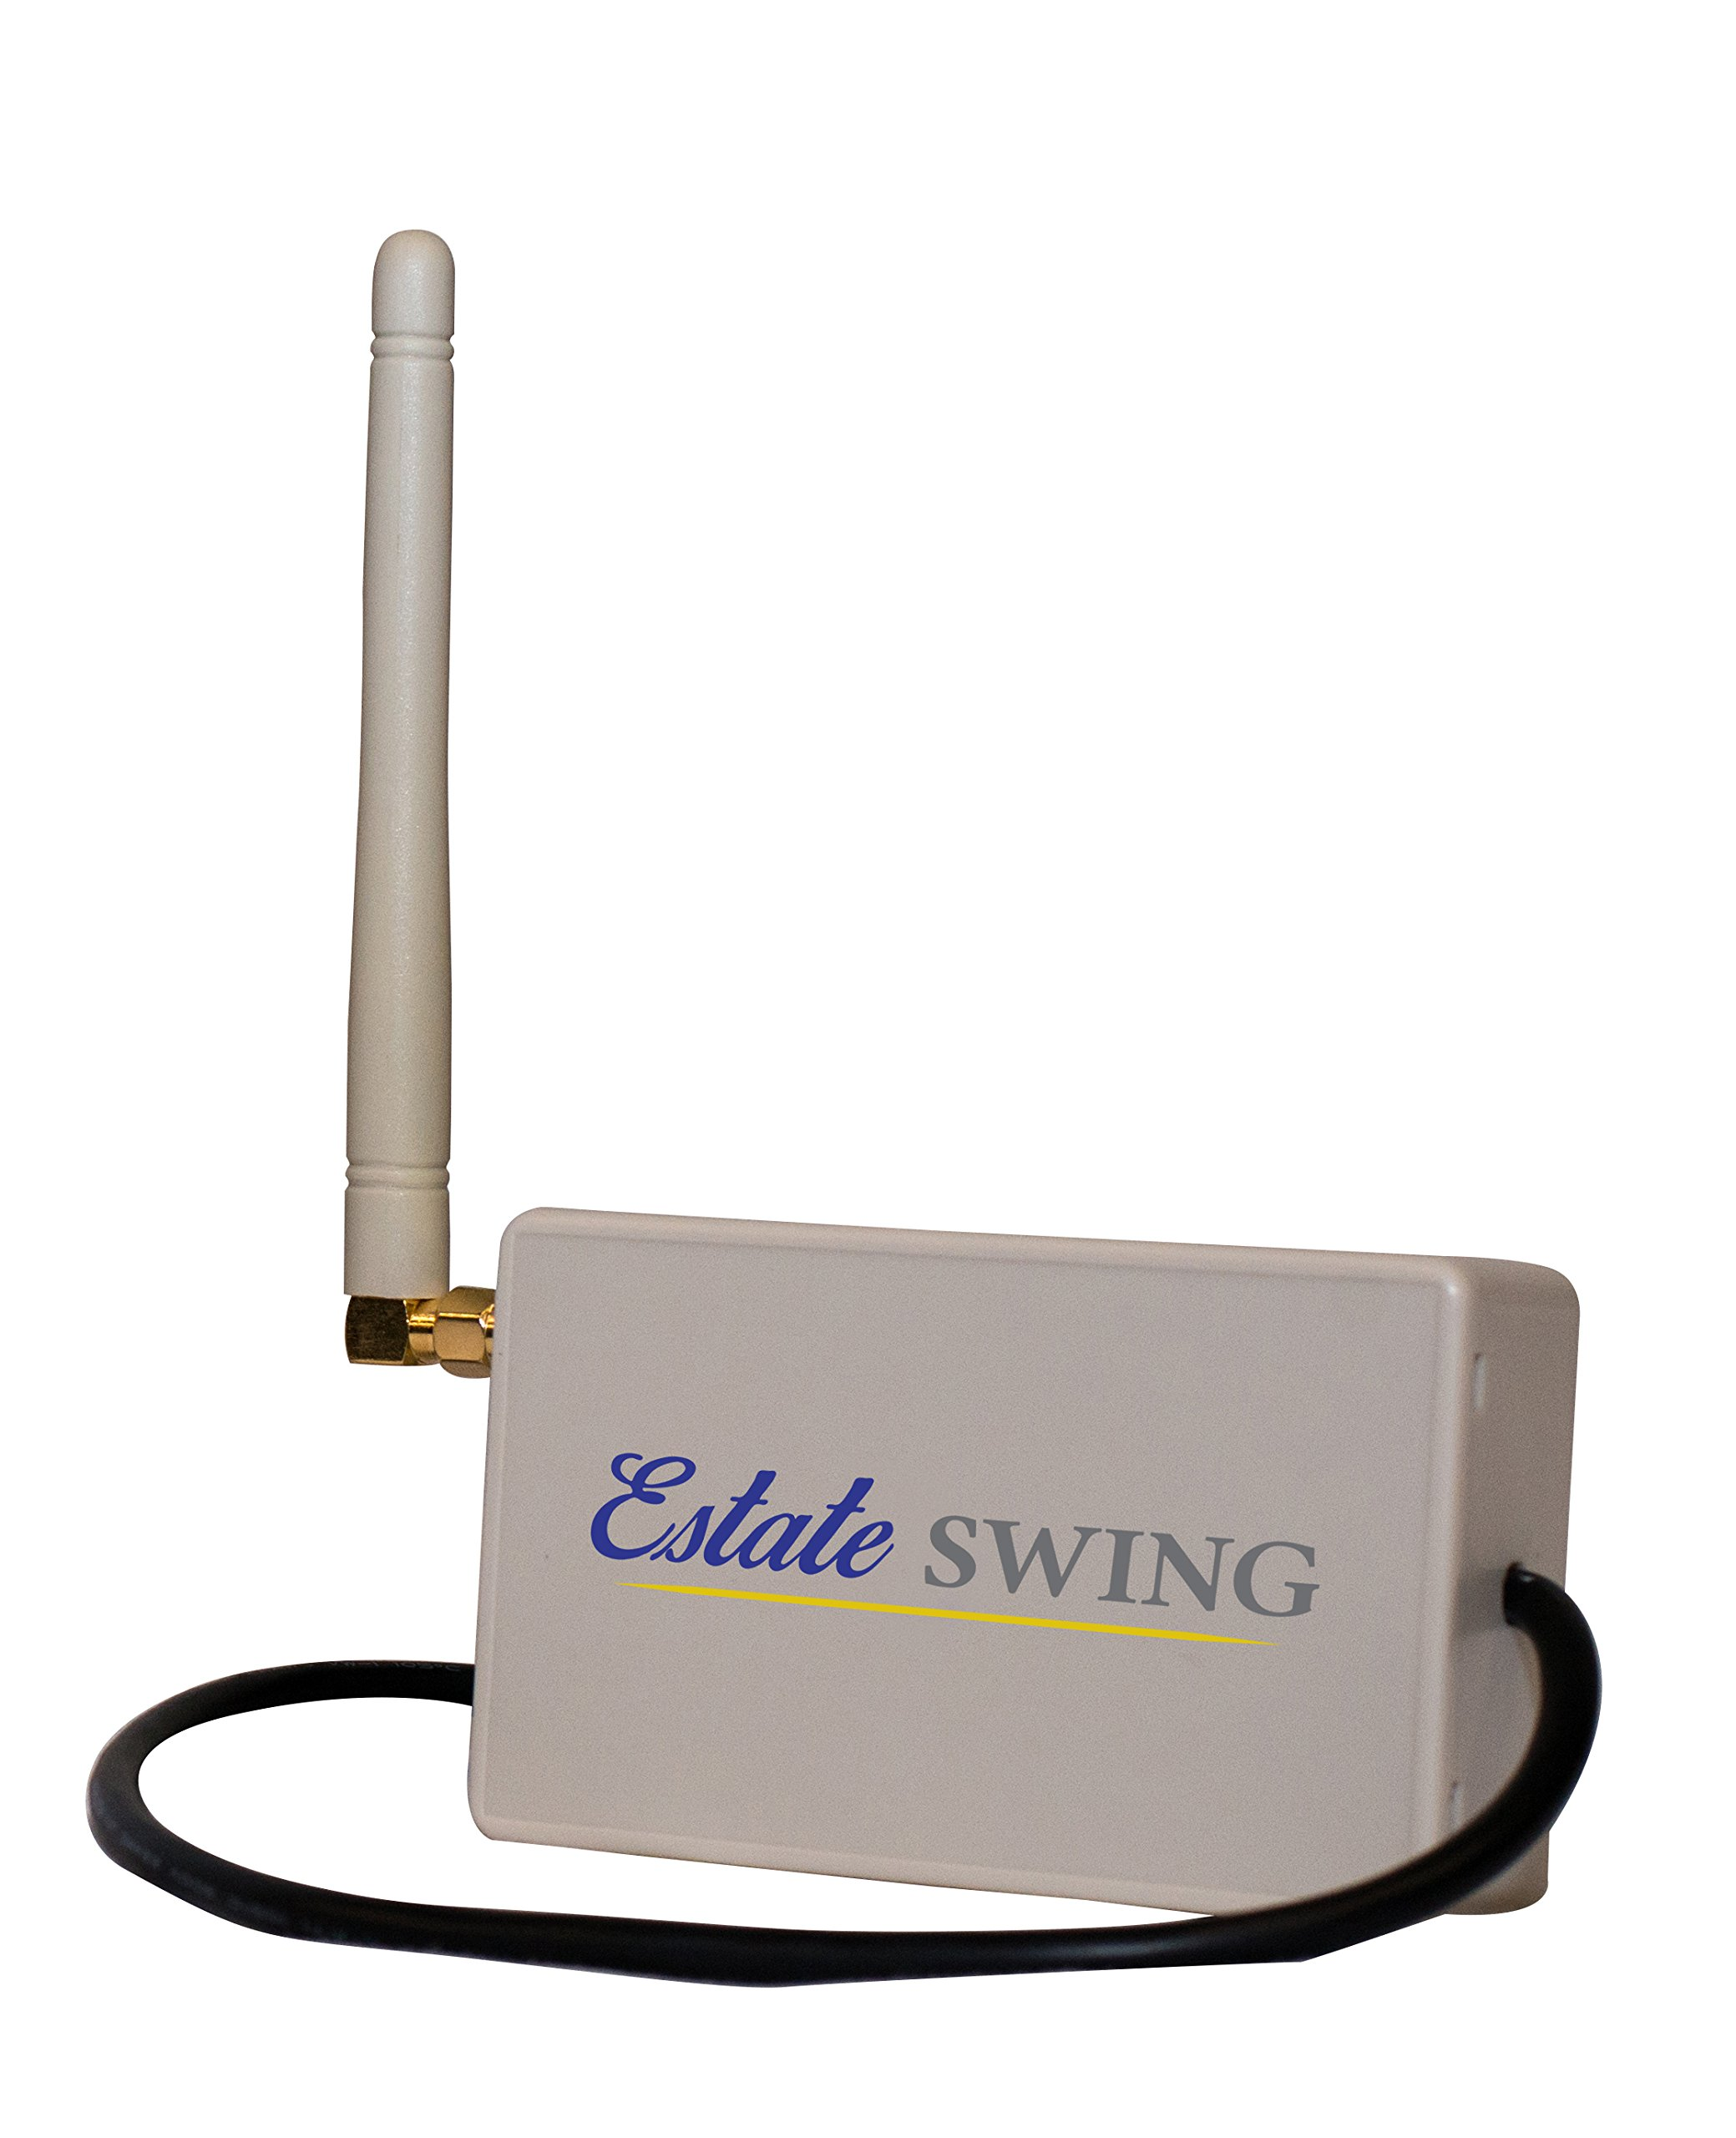 Estate Swing GSM 3G Unlimited Range Cell Phone Receiver